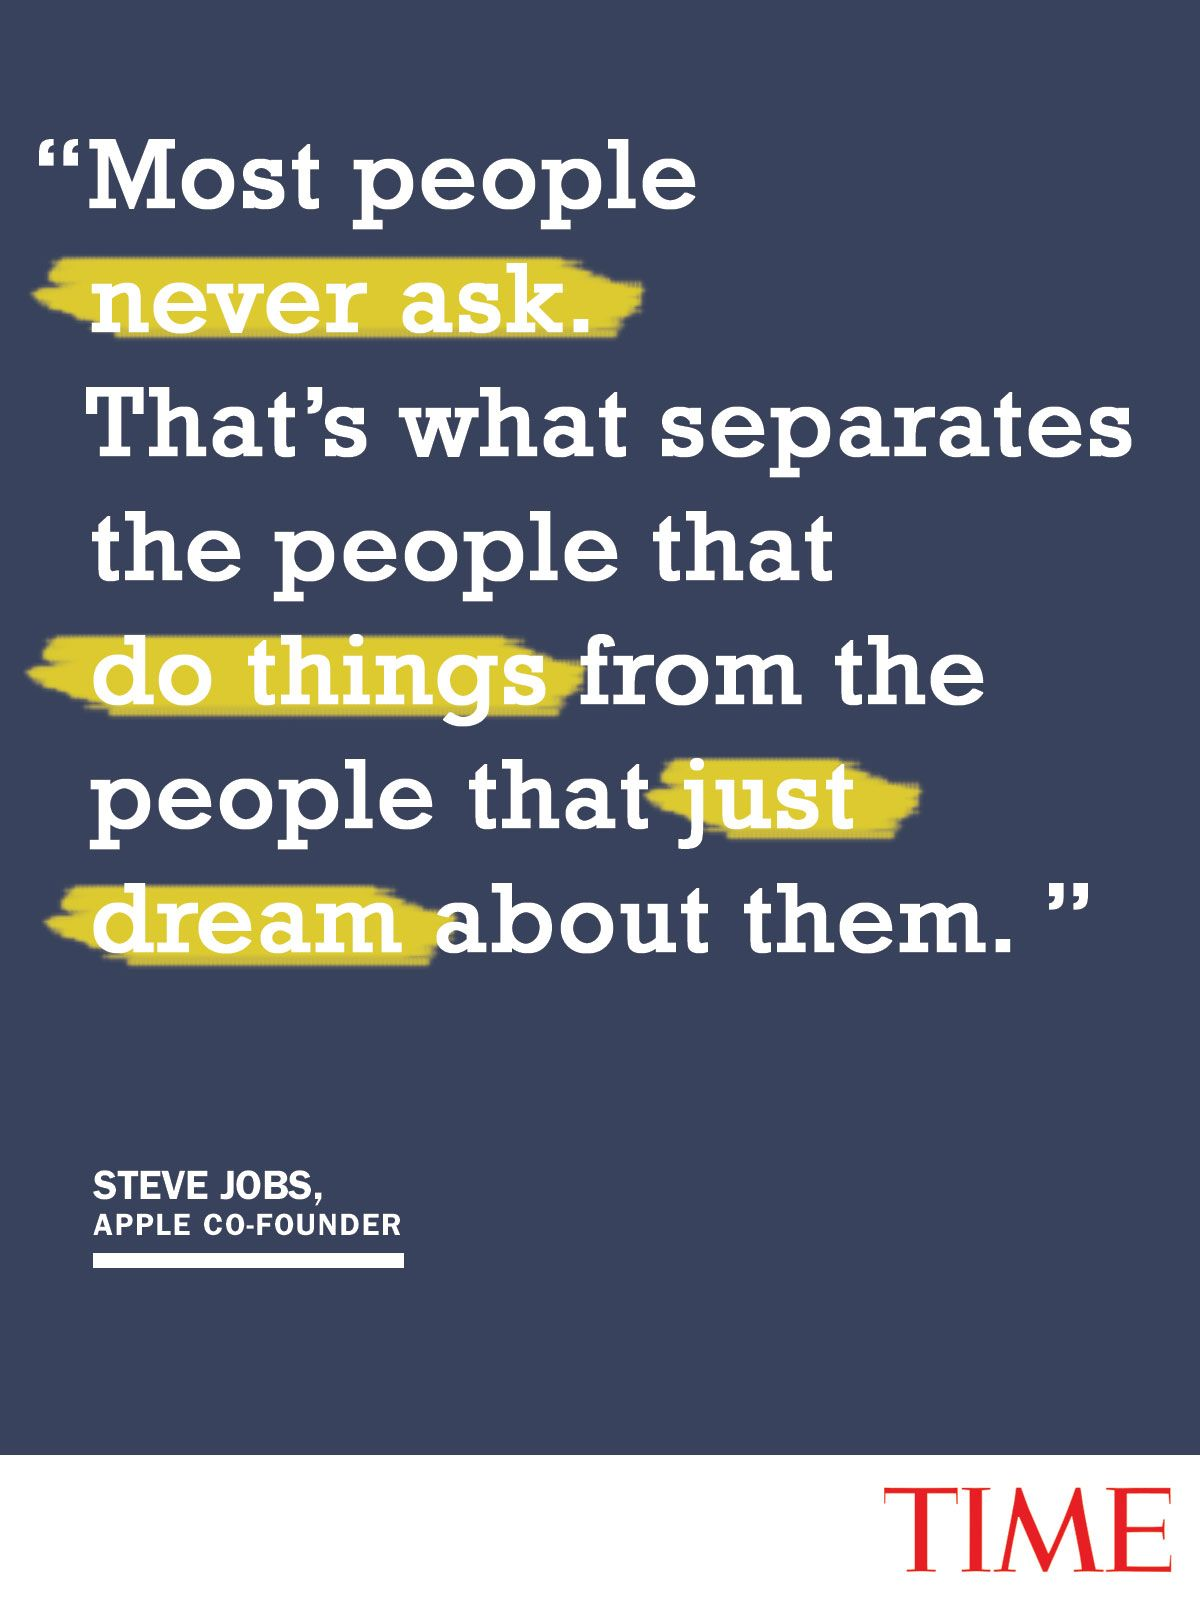 Steve Jobs On The Power Of Asking For Help Words Quotes